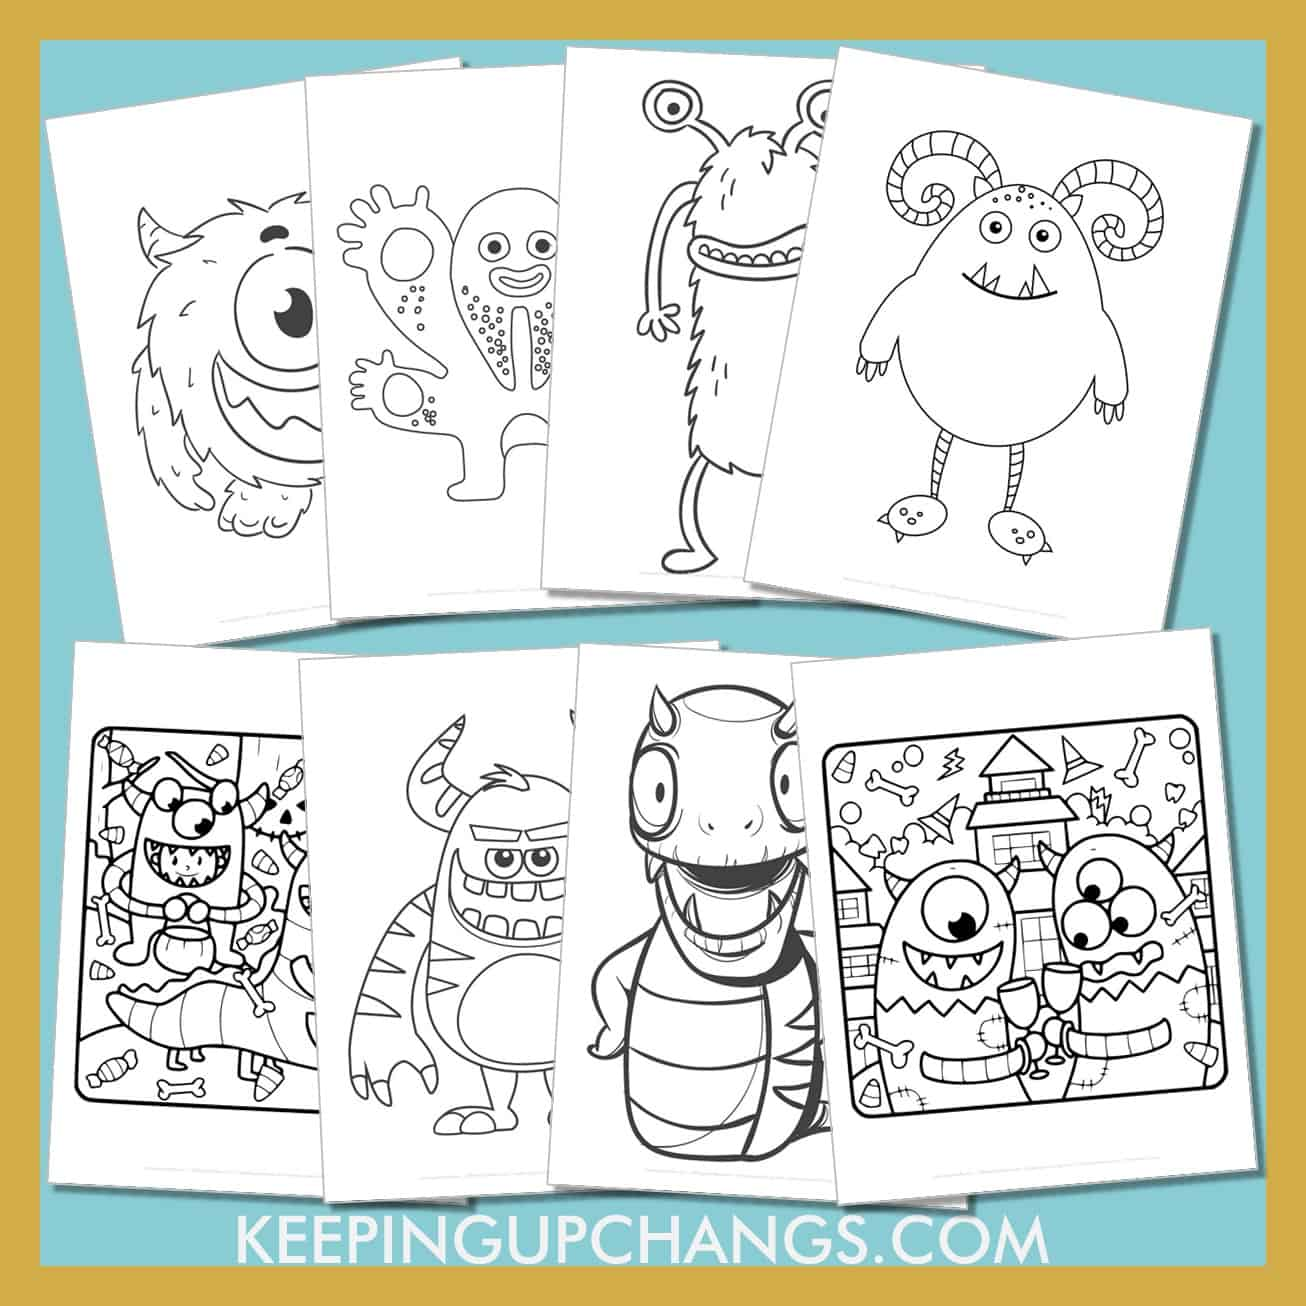 monster colouring sheets including cute, scary, realistic creatures and more.